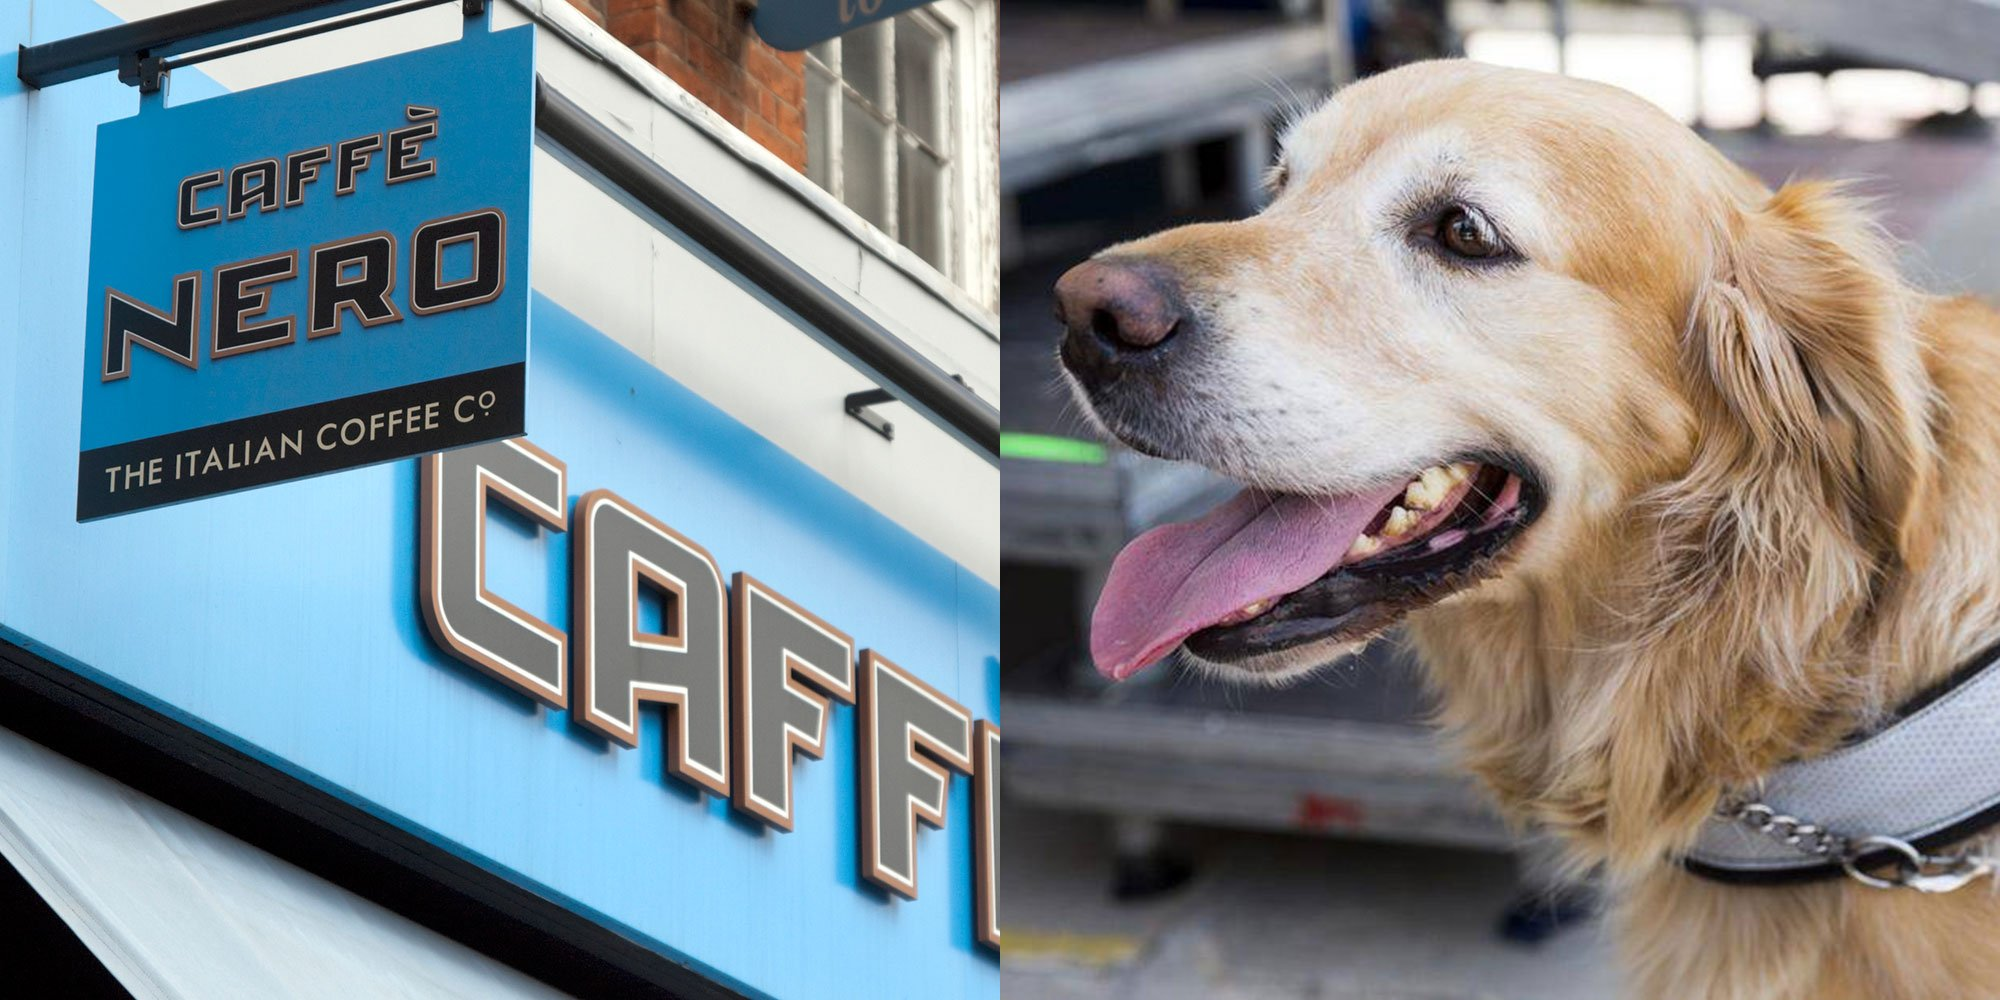 Caffe Nero 'refused to give a guide dog water' and people were furious https://t.co/oJKQFLwp8a https://t.co/Qv2L9dHCtY